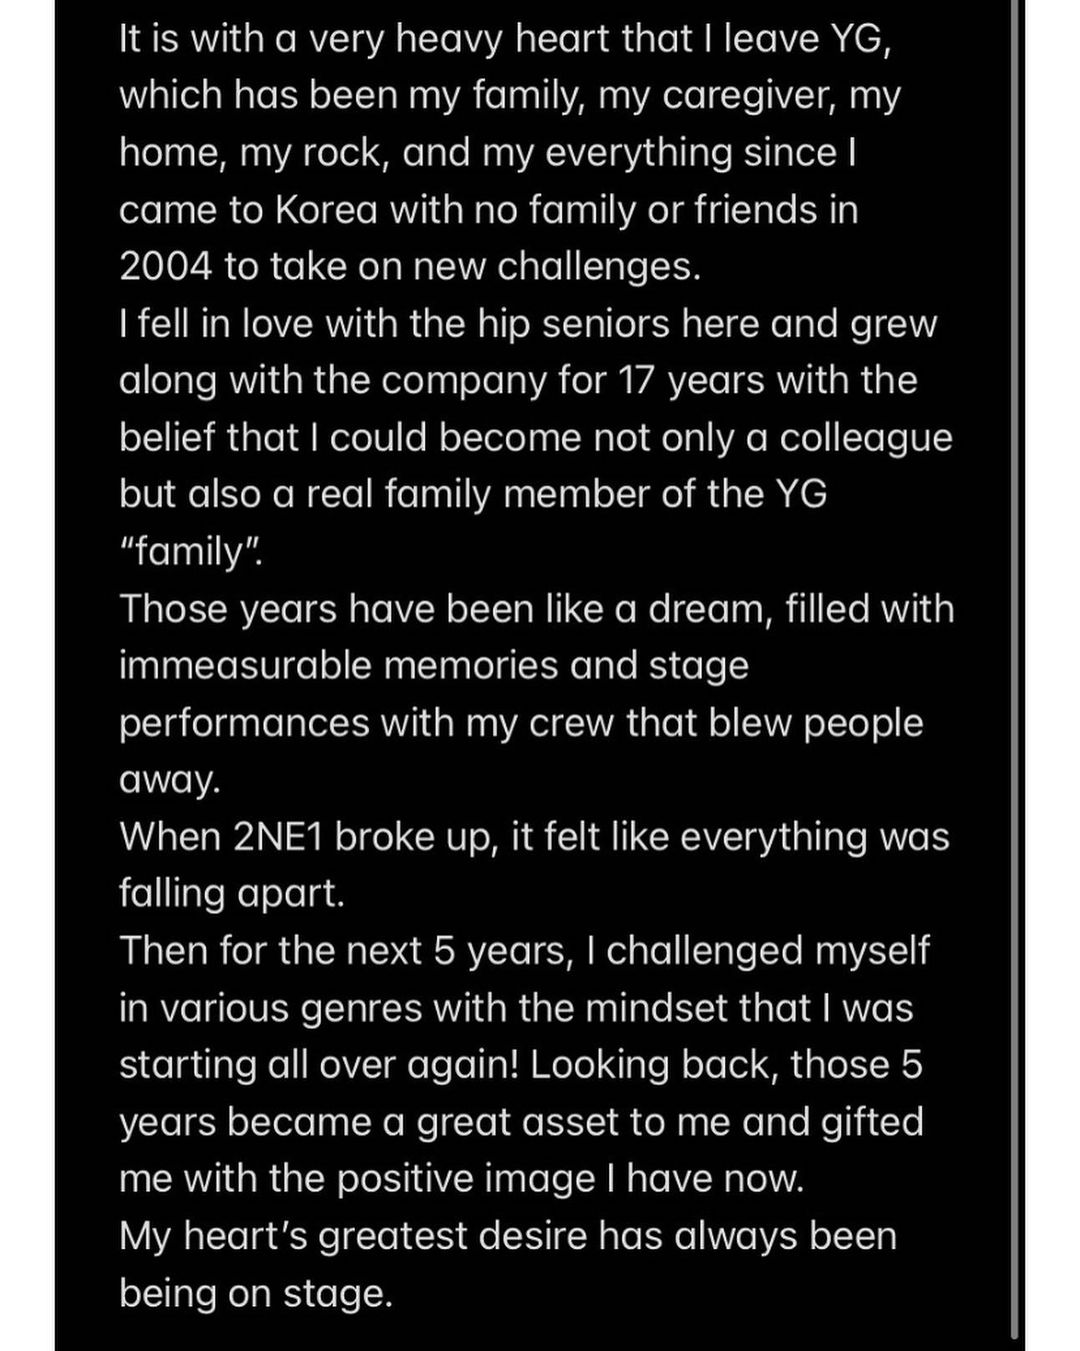 Sandara Park message about departure from YG